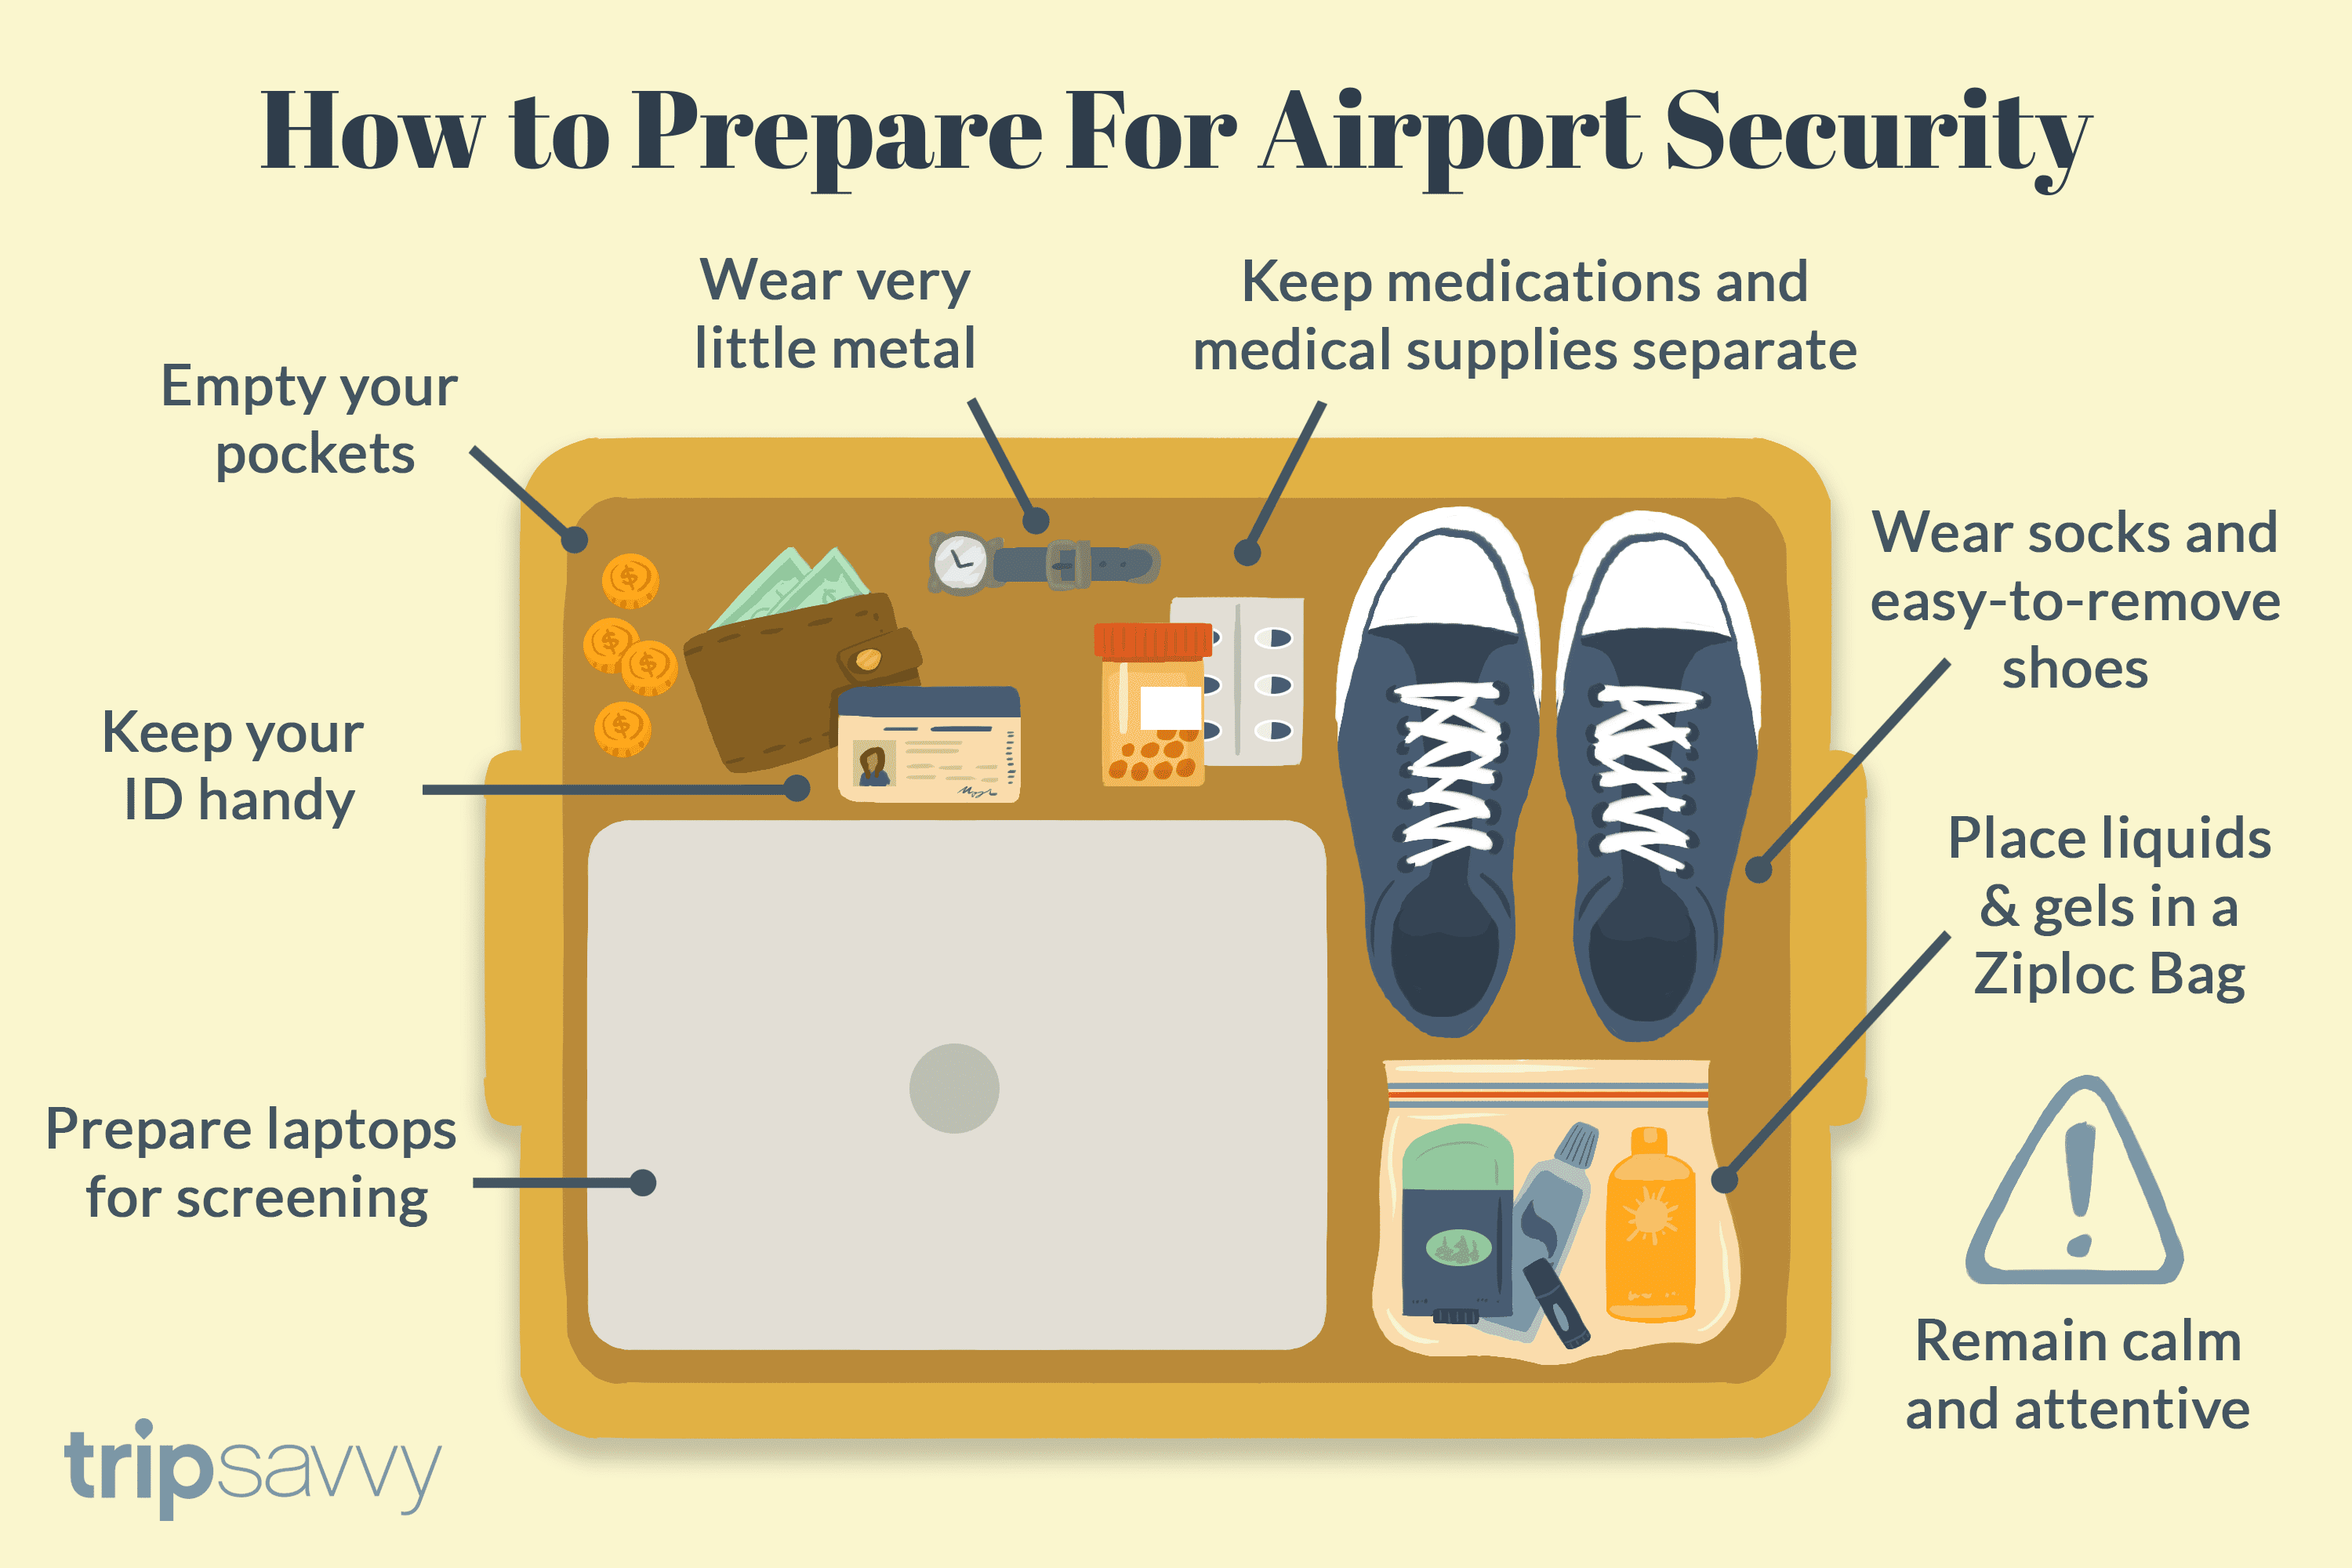 Get Ready to Go Through Airport Security